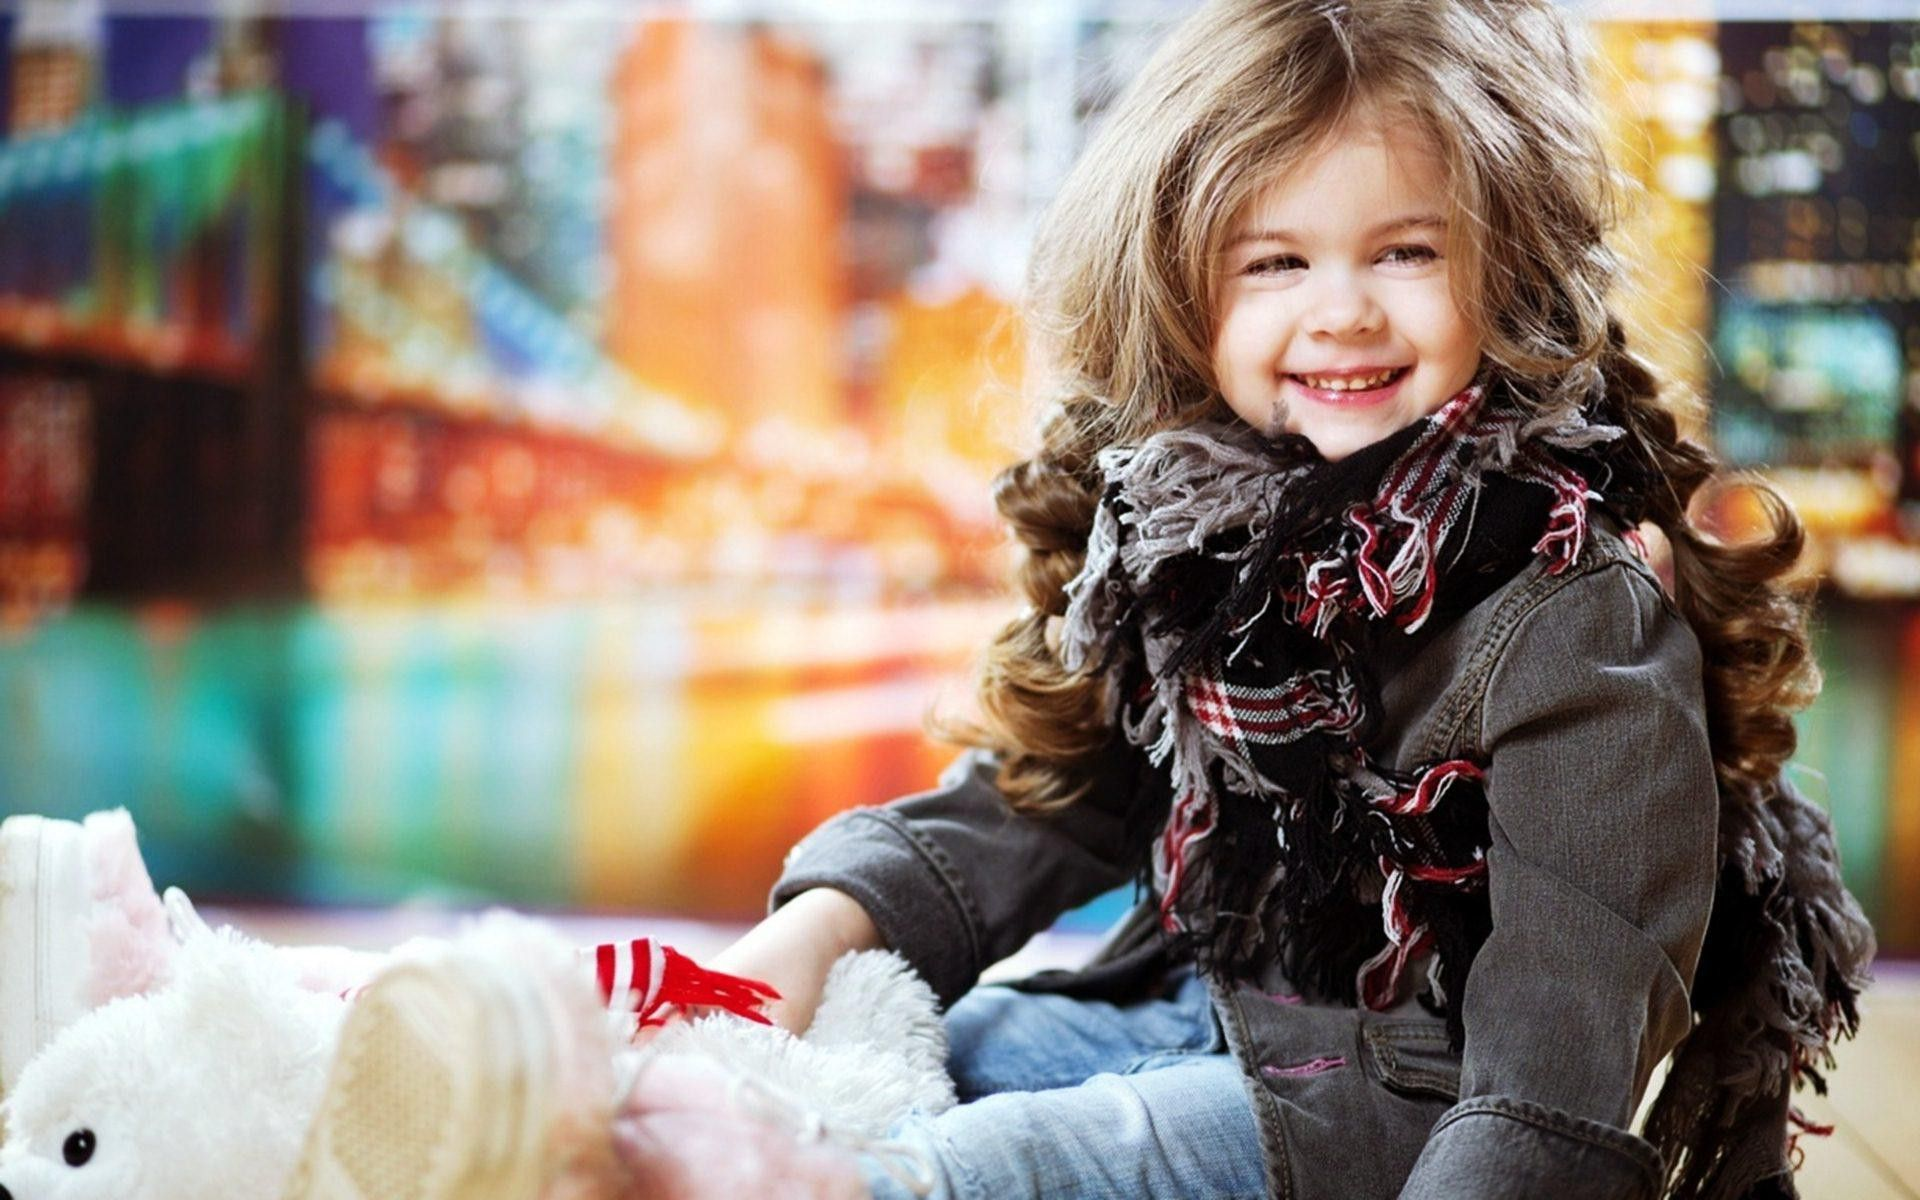 Little stylish girl wallpapers advise to wear in autumn in 2019